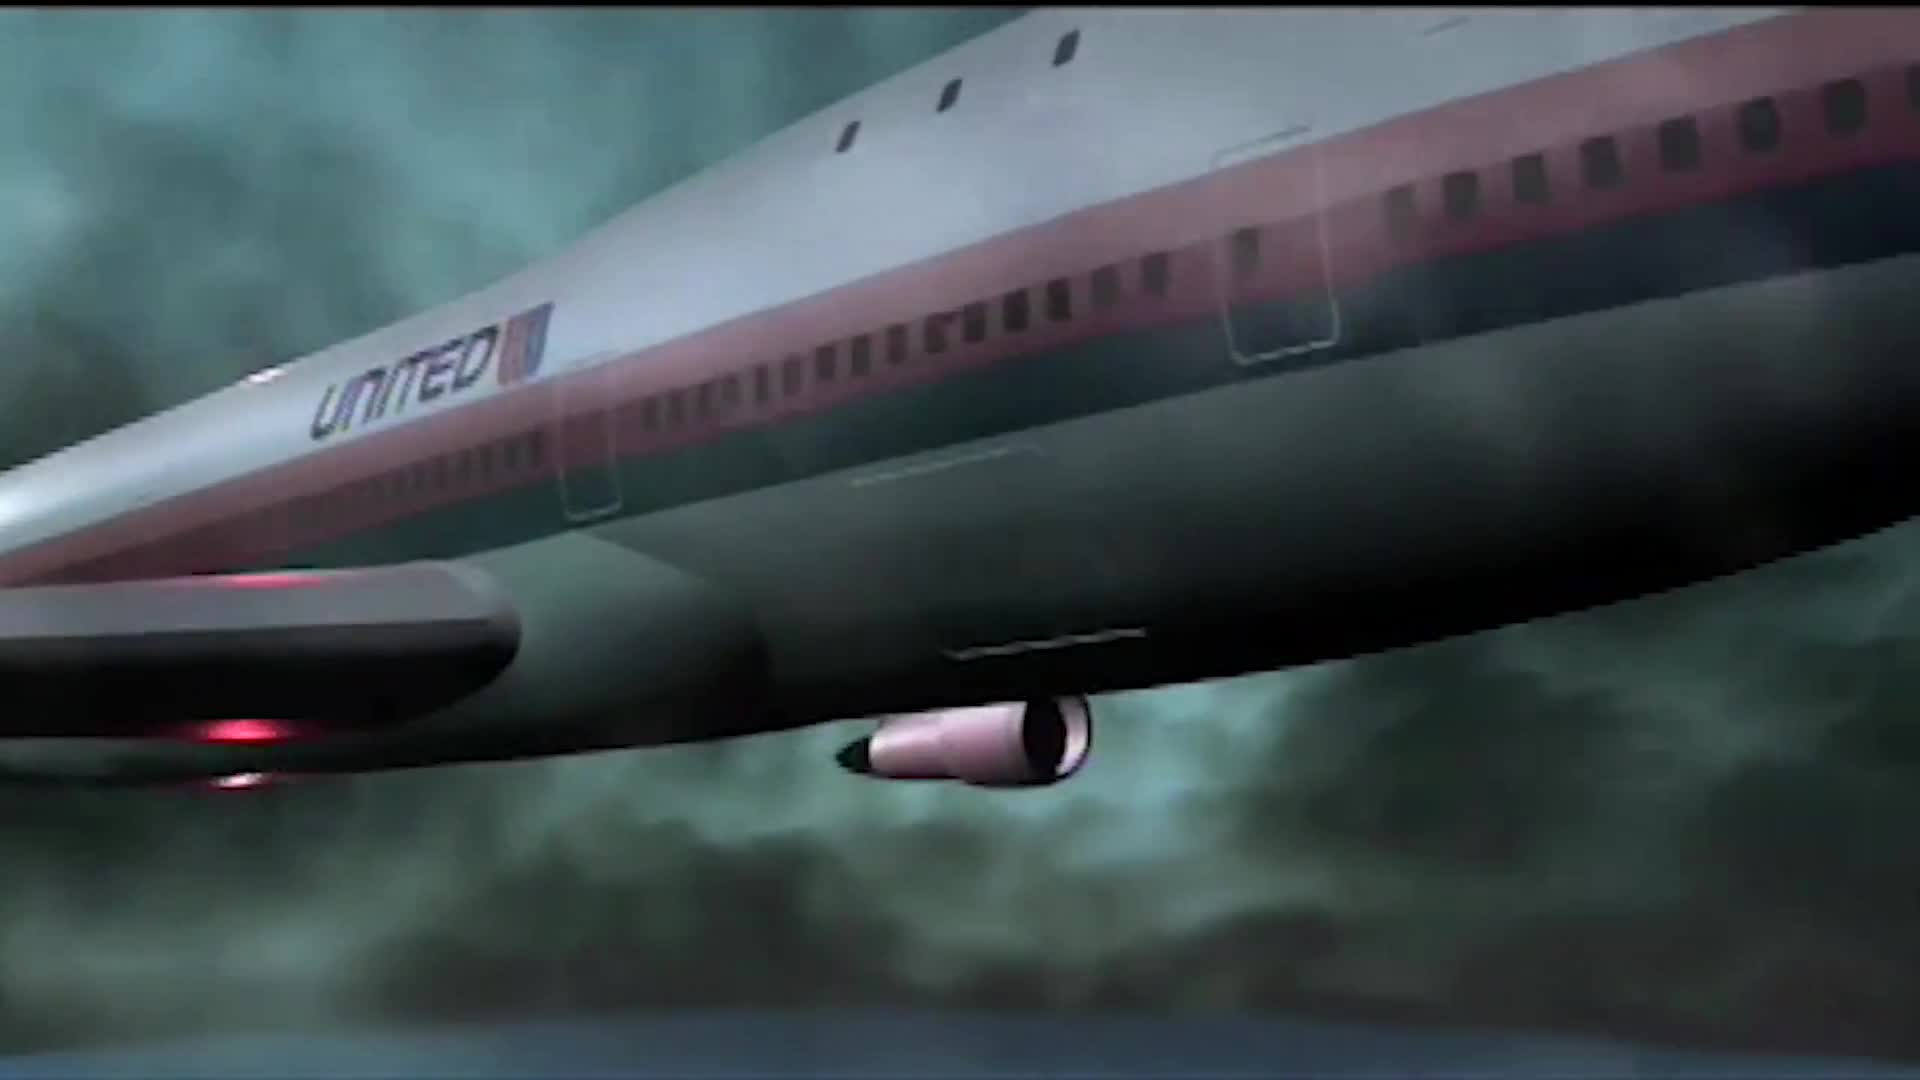 JAL 123, aa 191, american airlines 191, japan airlines 123, mechanical failure, plane crashes, united 811, why planes crash, BREAKING POINT GIFs